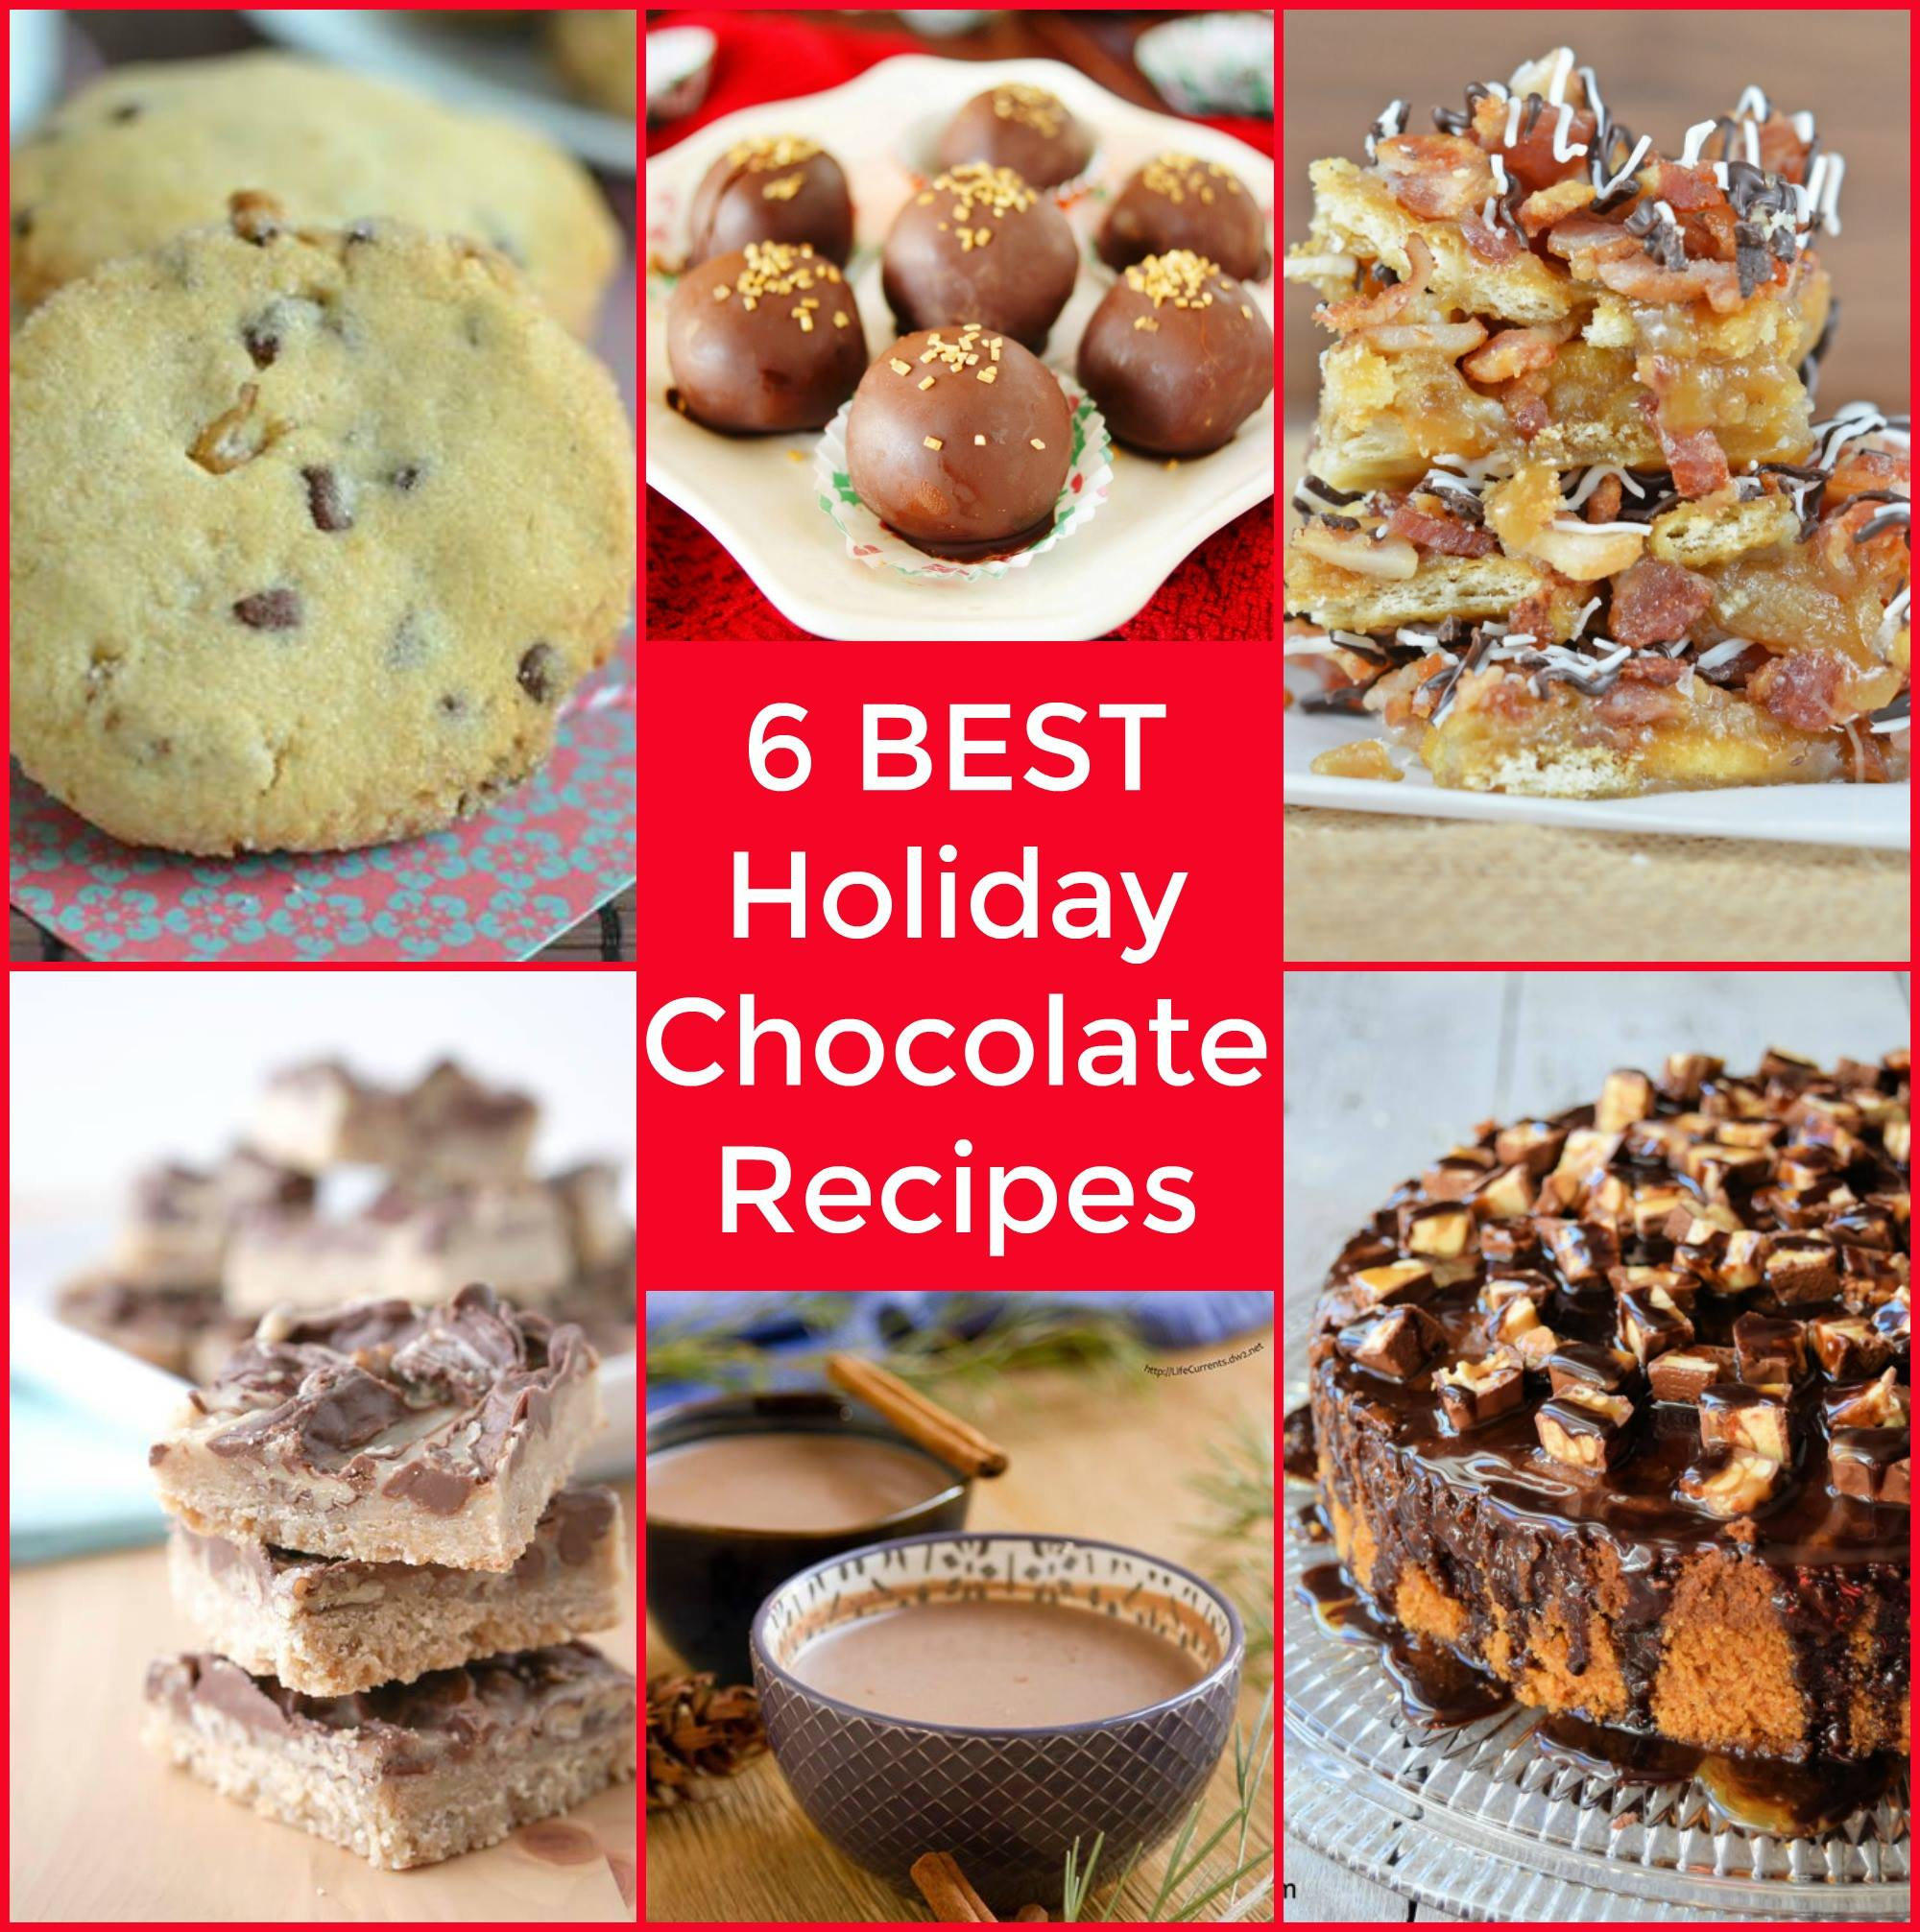 Mexican Mocha - 6 Best Holiday Chocolate Recipes